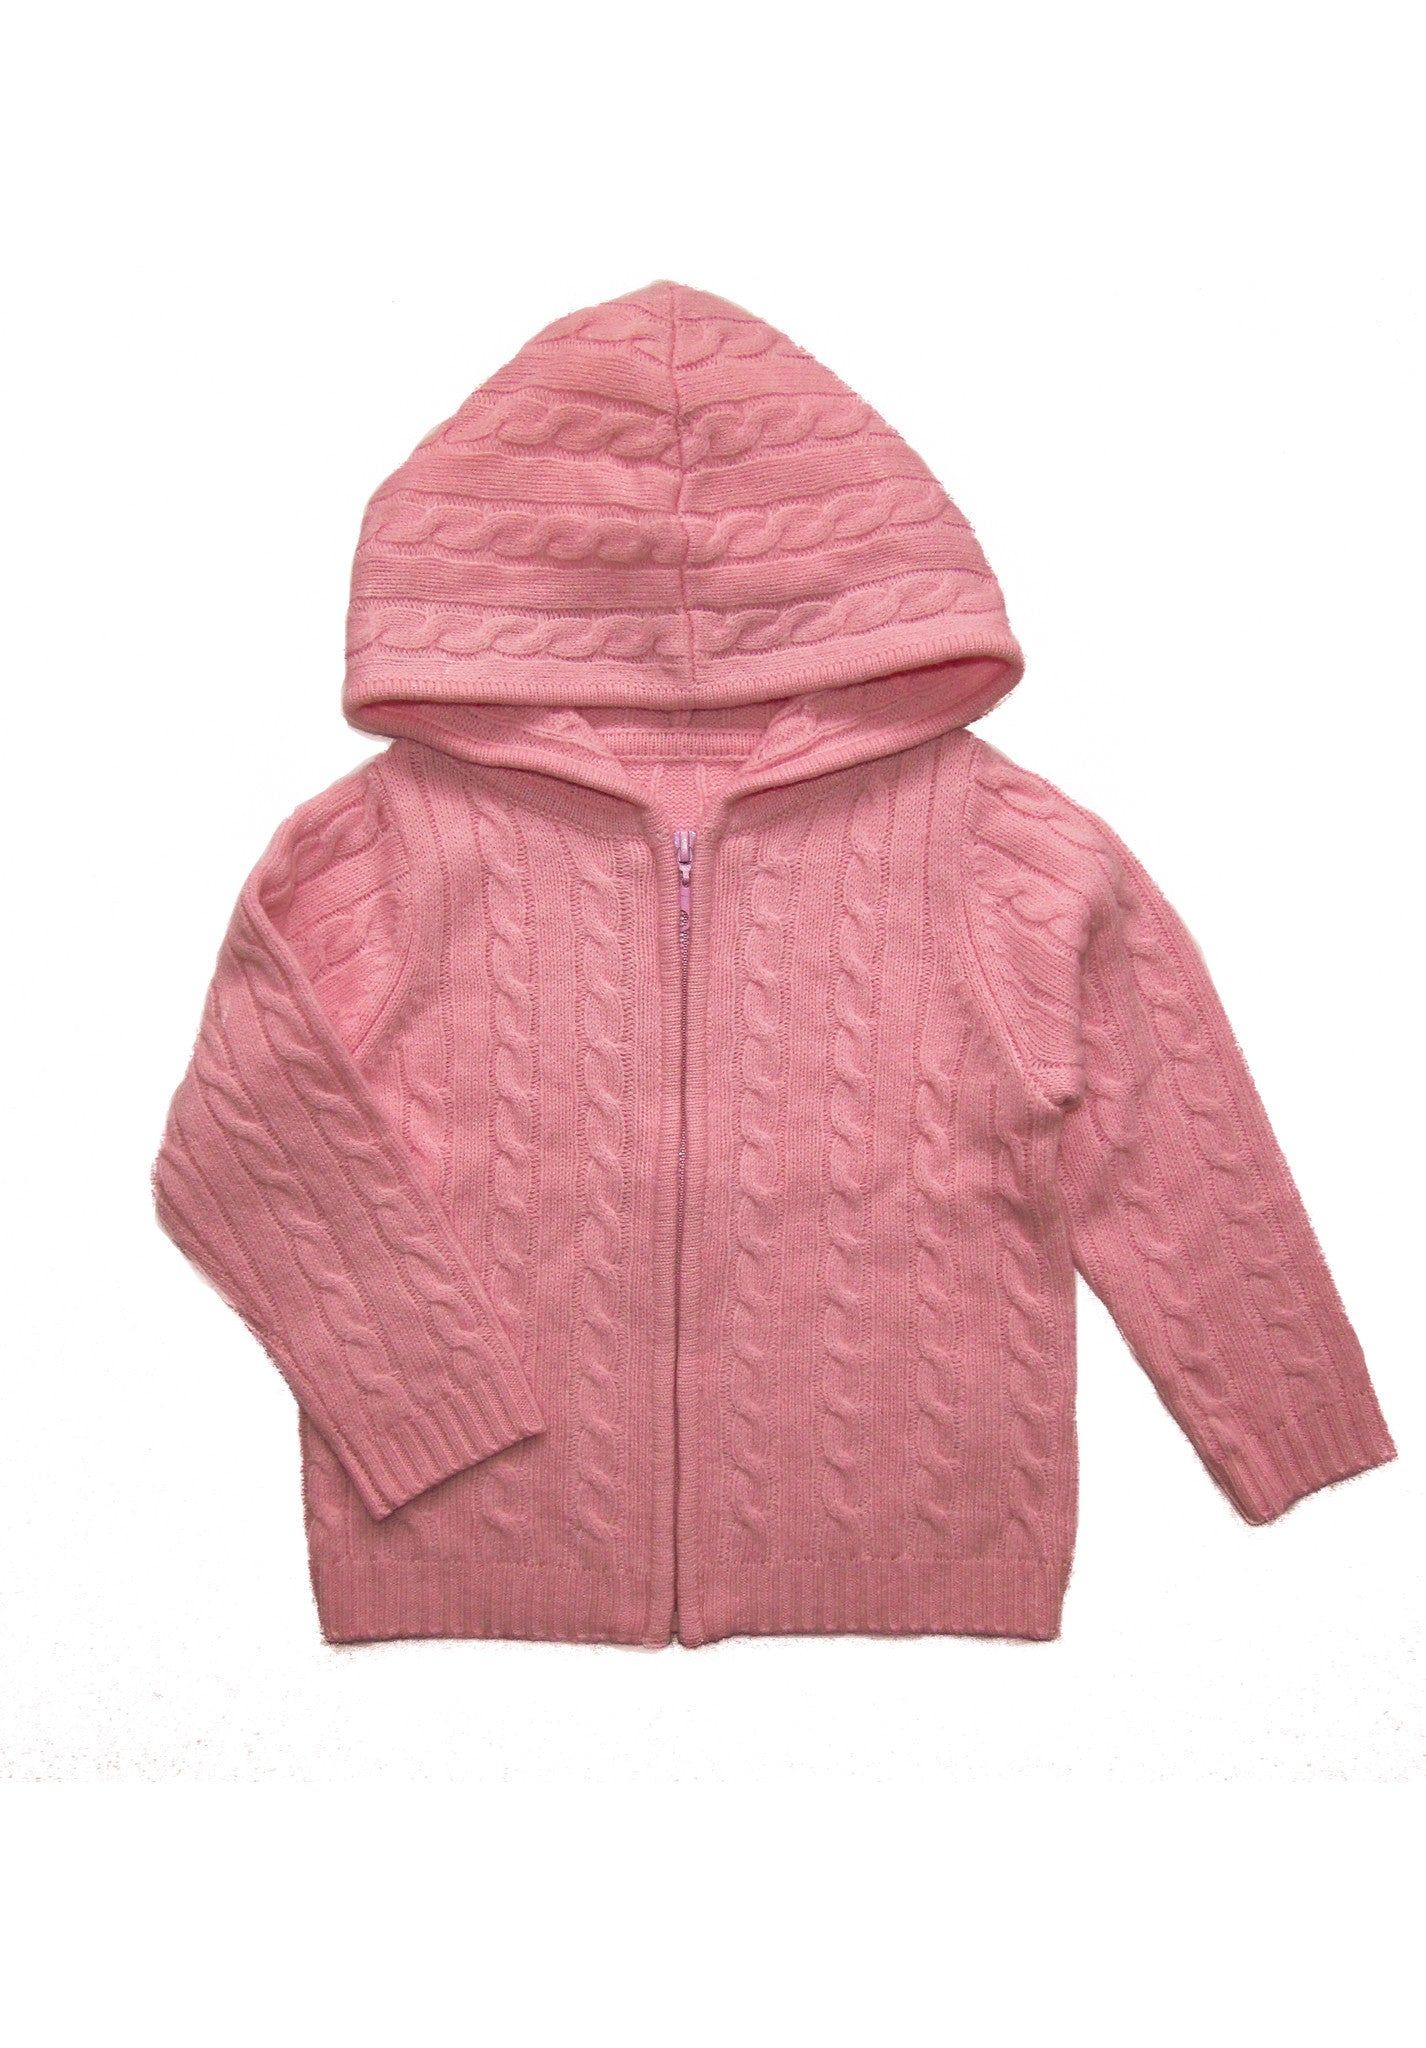 CashmereHome Cashmere Sweater Kids Girl